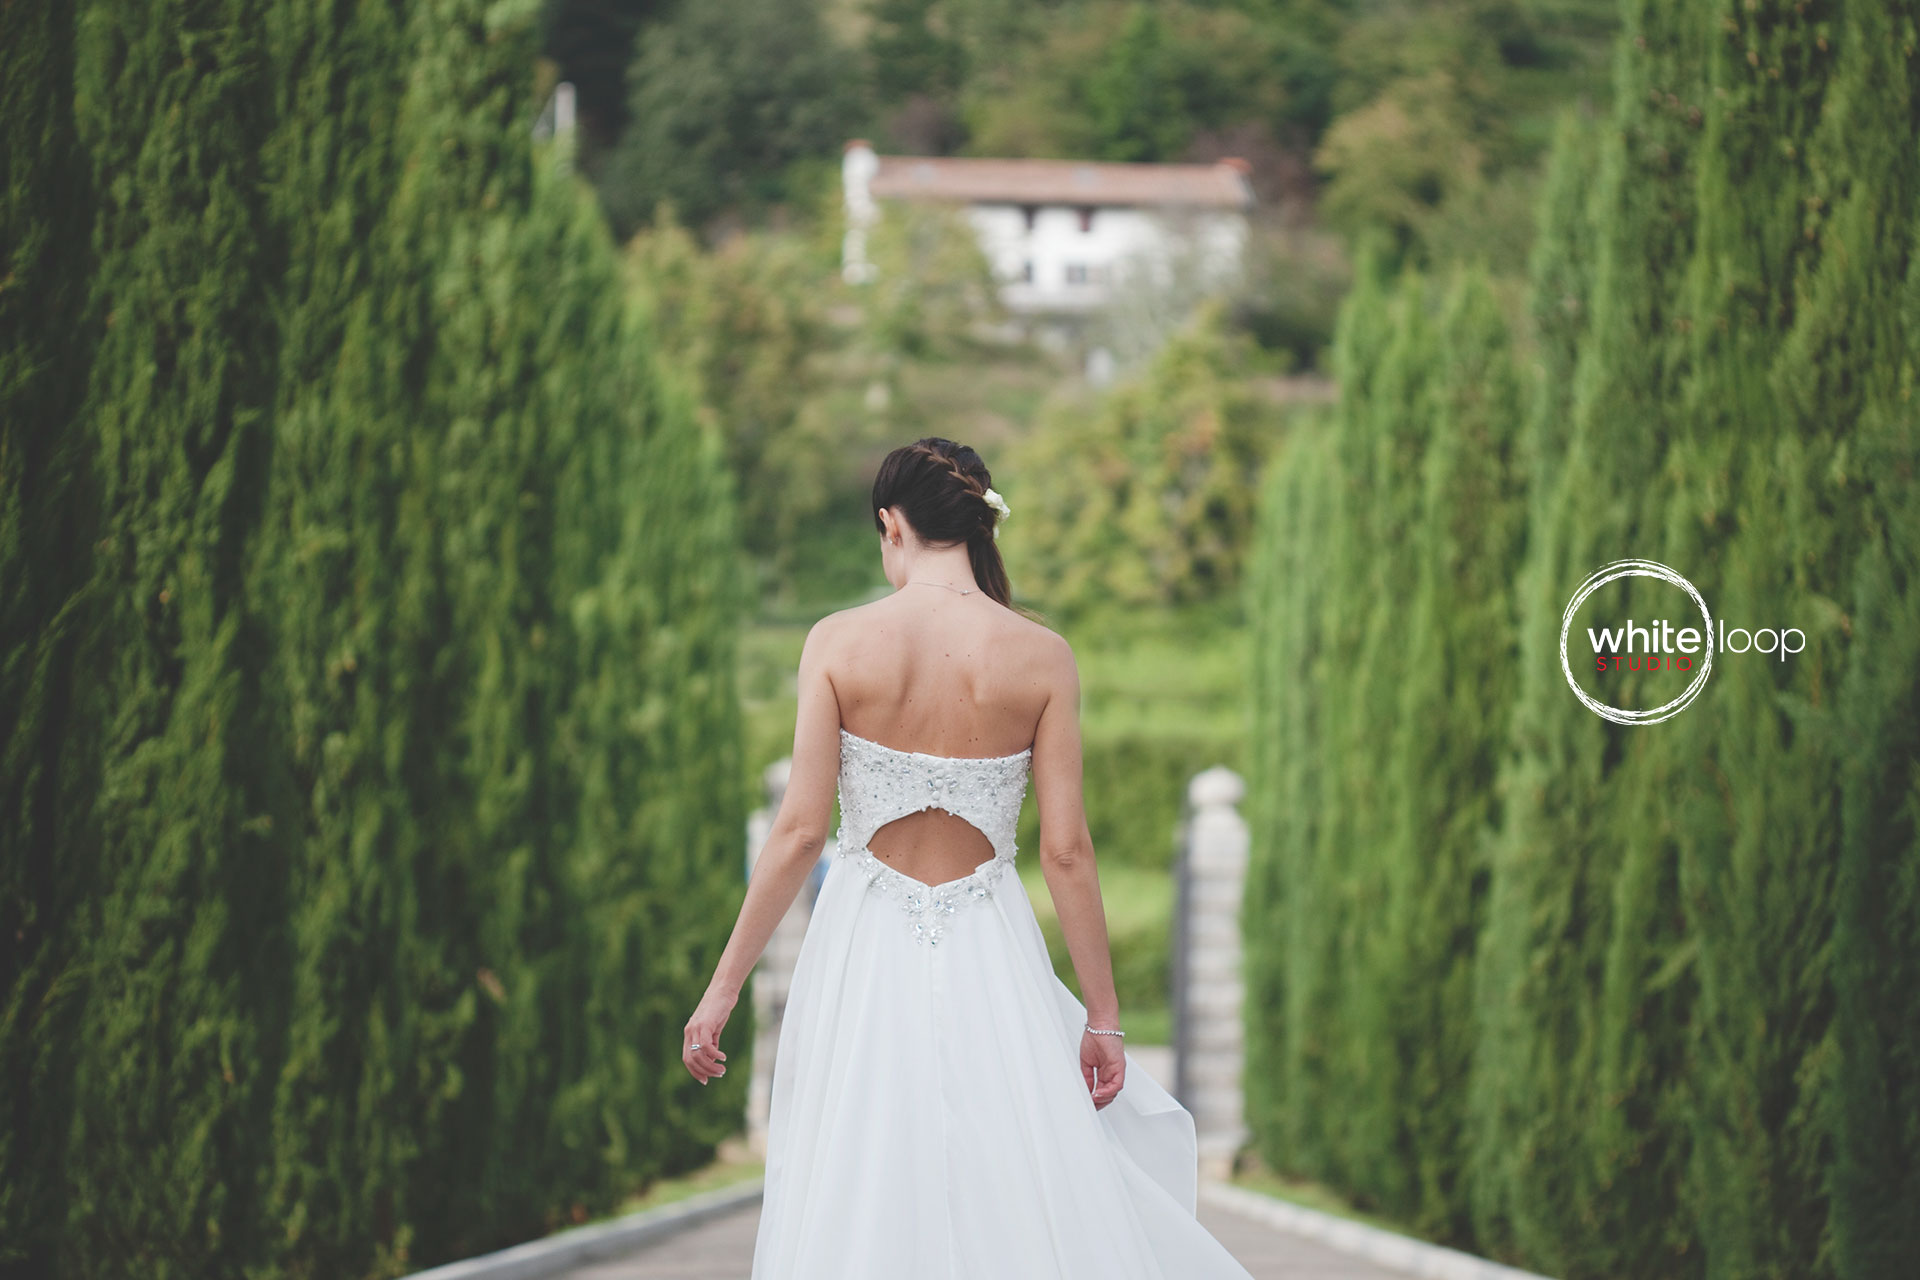 The bride is walking alone in this wedding dress, by a aisle full of little pine trees.